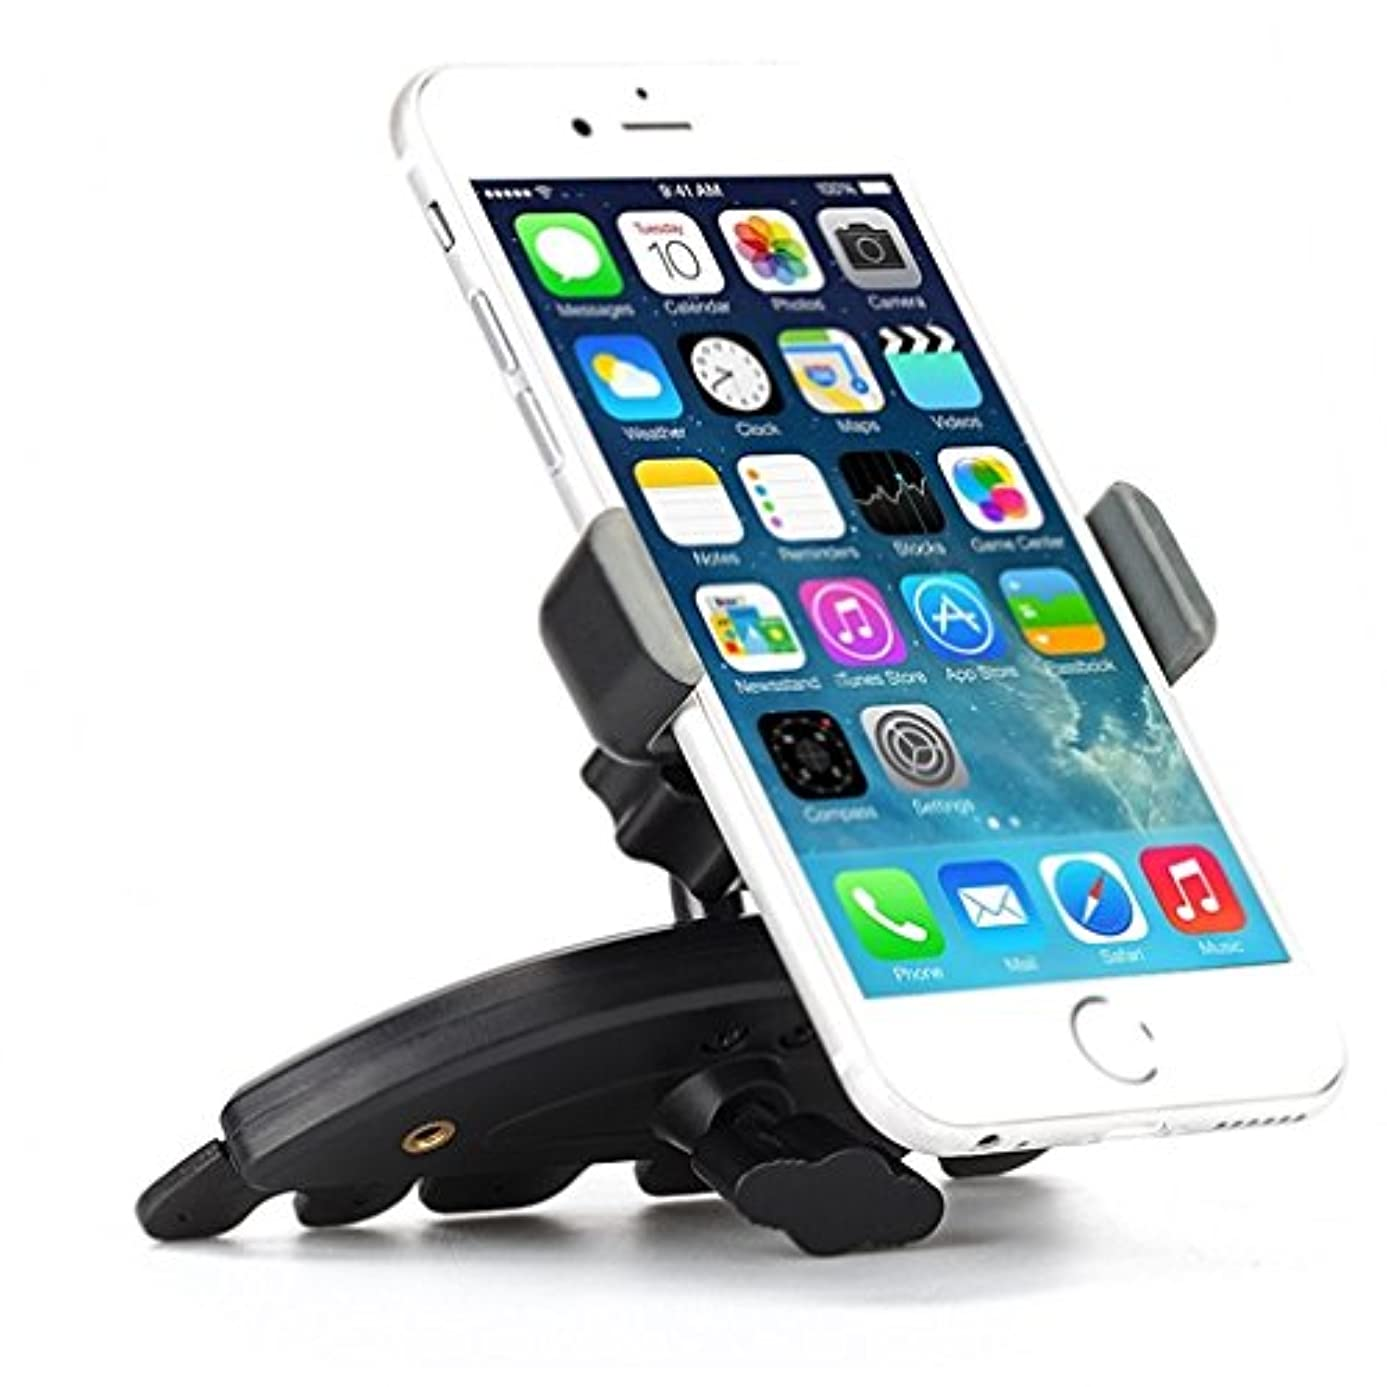 High Quality CD Player Slot Car Mount Phone Holder Dock for Net10, Straight Talk, Tracfone Galaxy Proclaim, Galaxy S2, S3, S3 Mini, Precedent, Discover, Ace Style- Motorola Droid Turbo 2